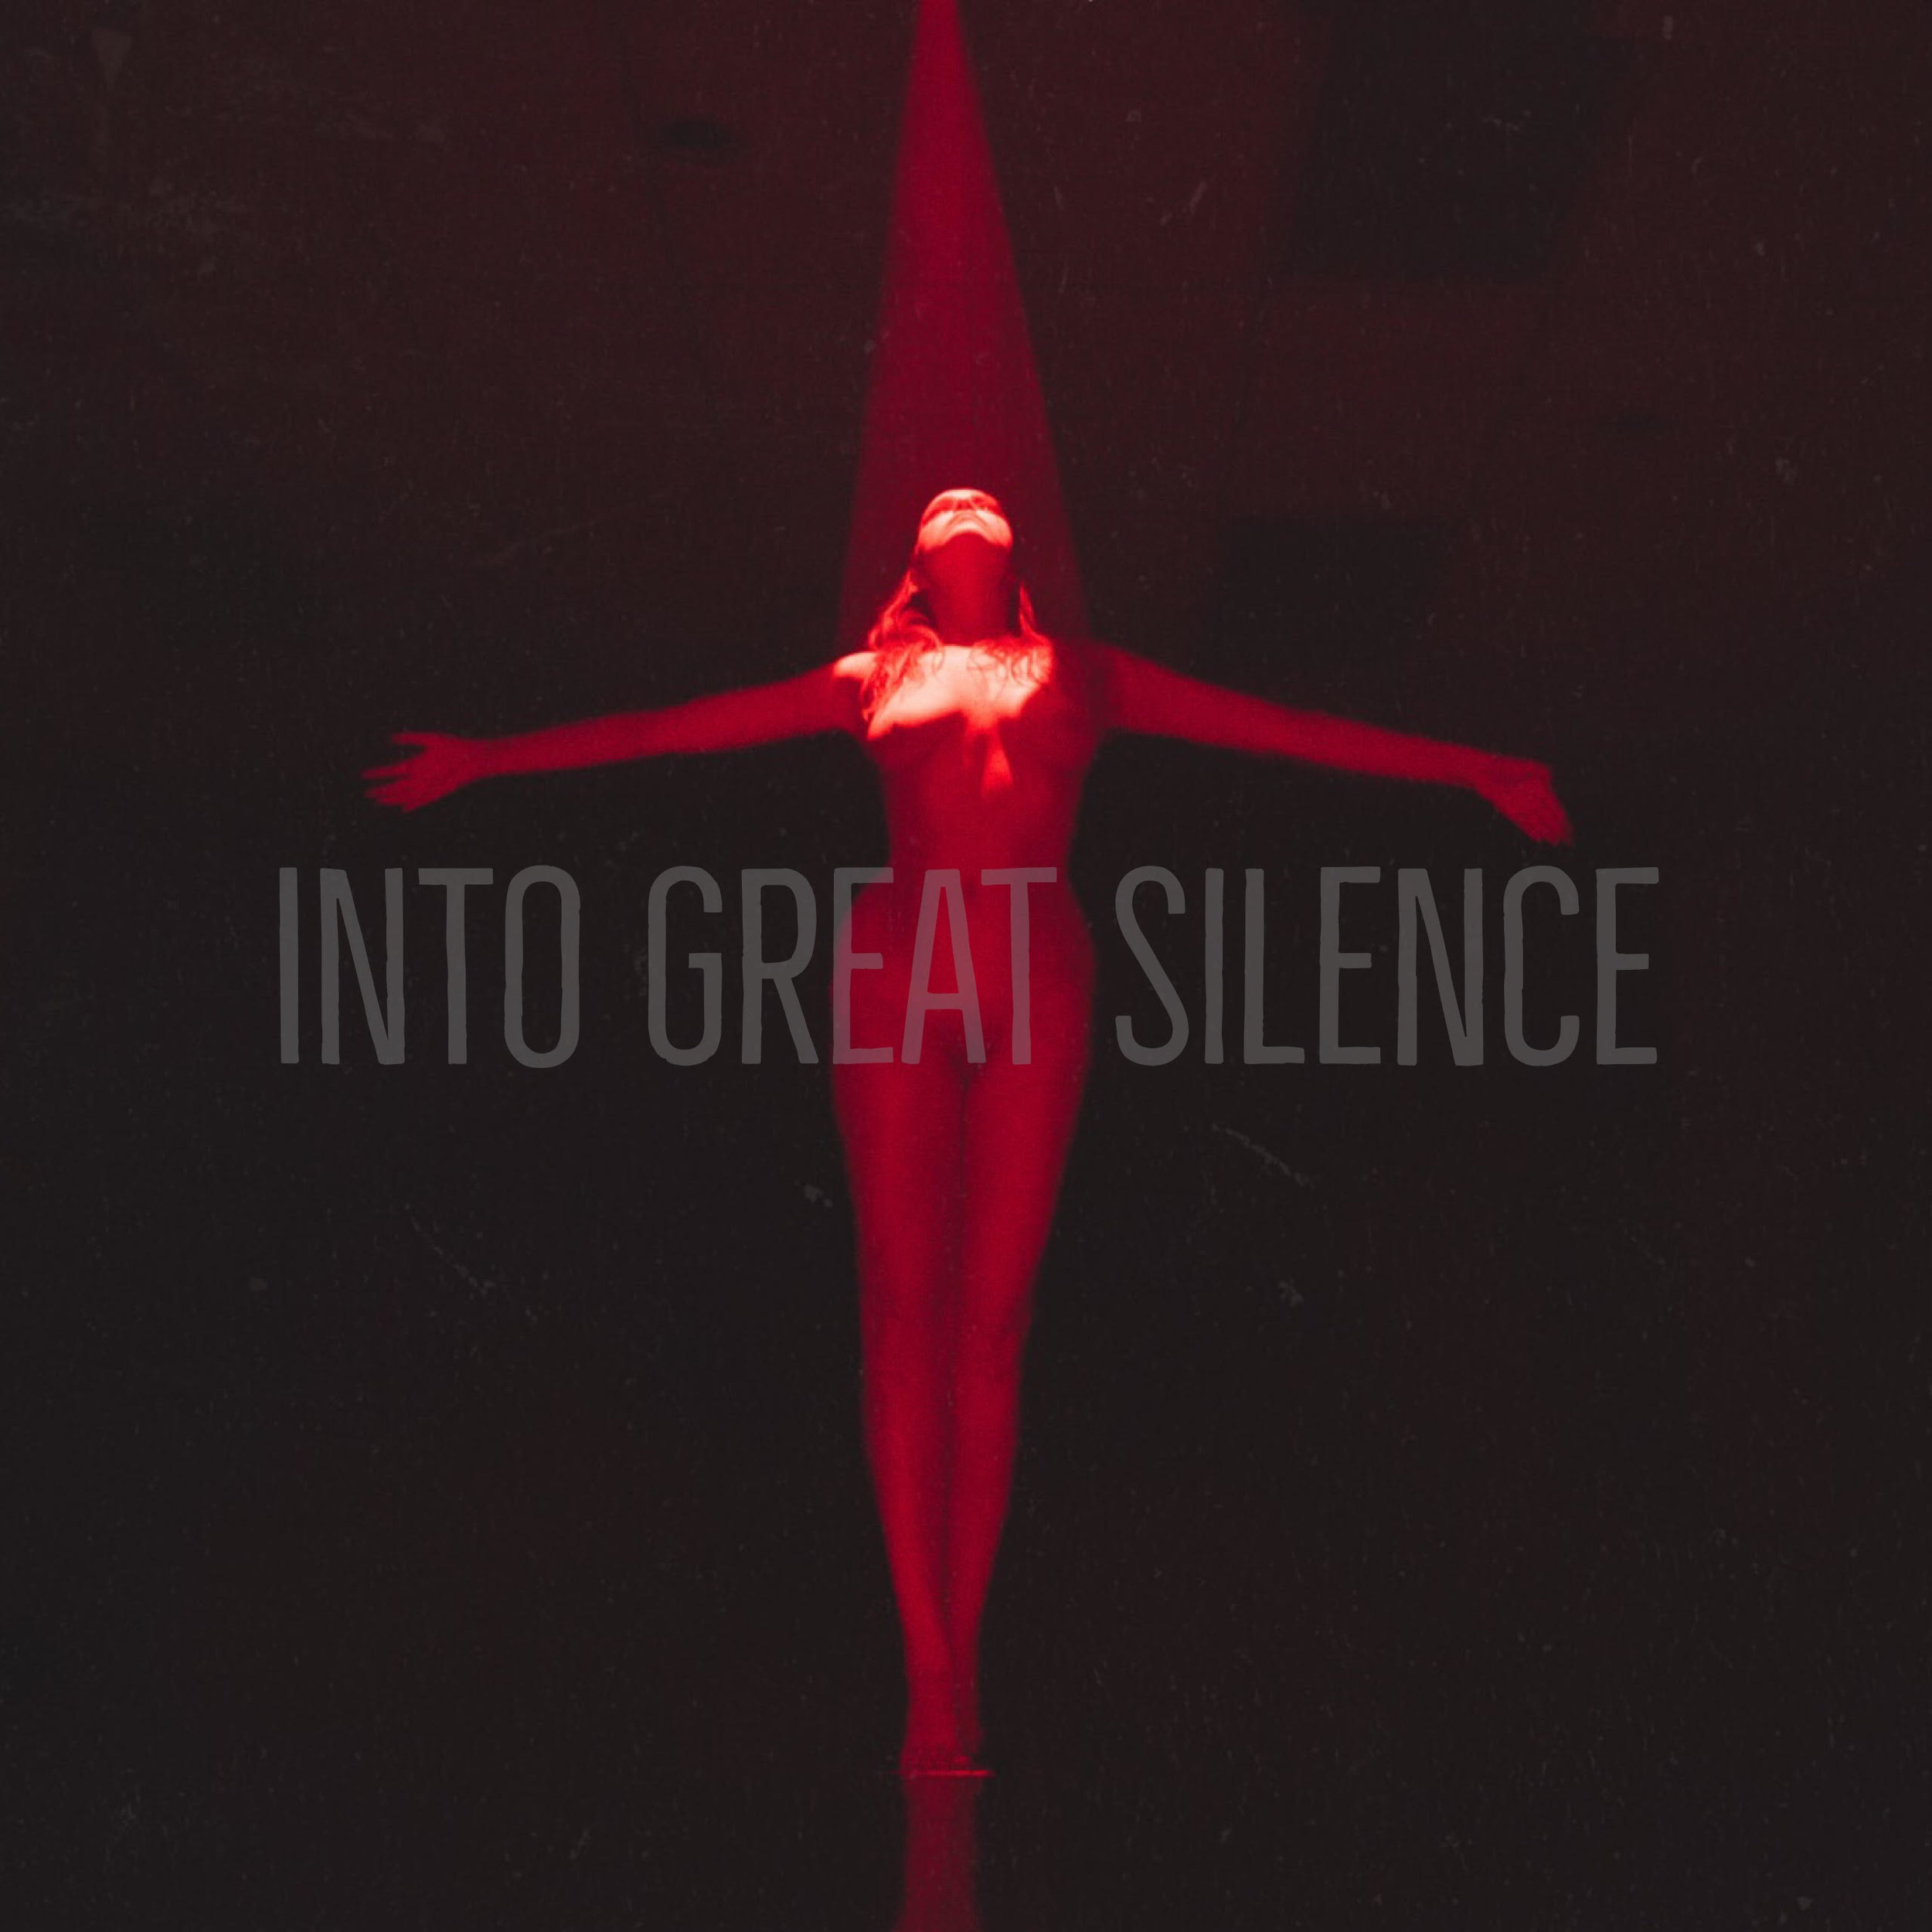 Into Great Silence 2018.jpg